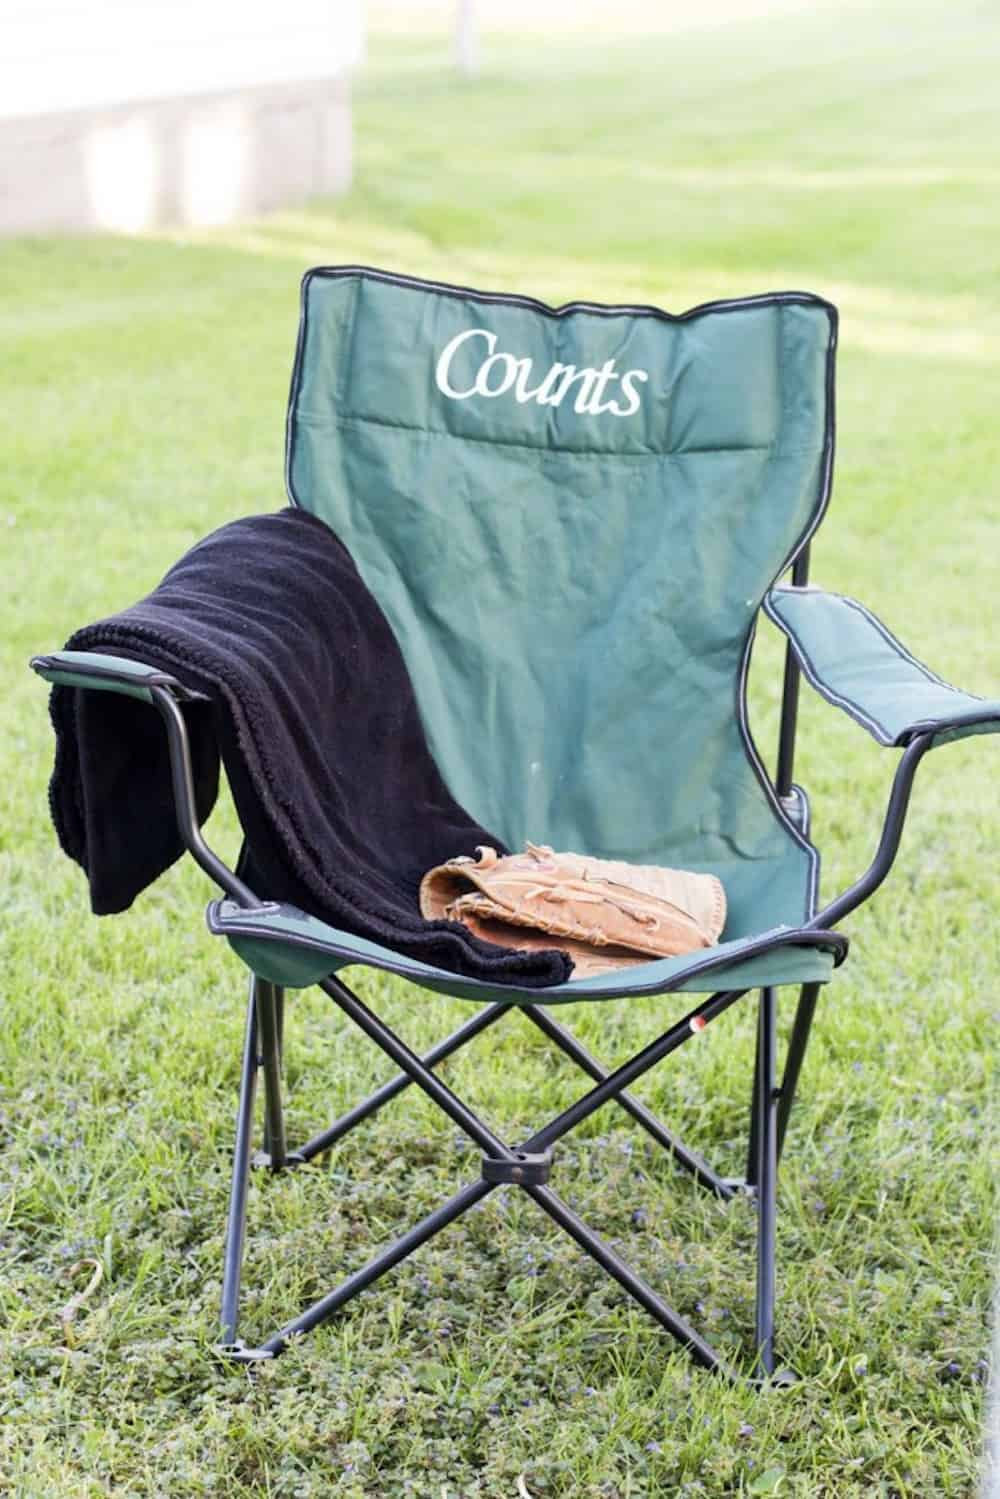 Customized Camping Chair DIY